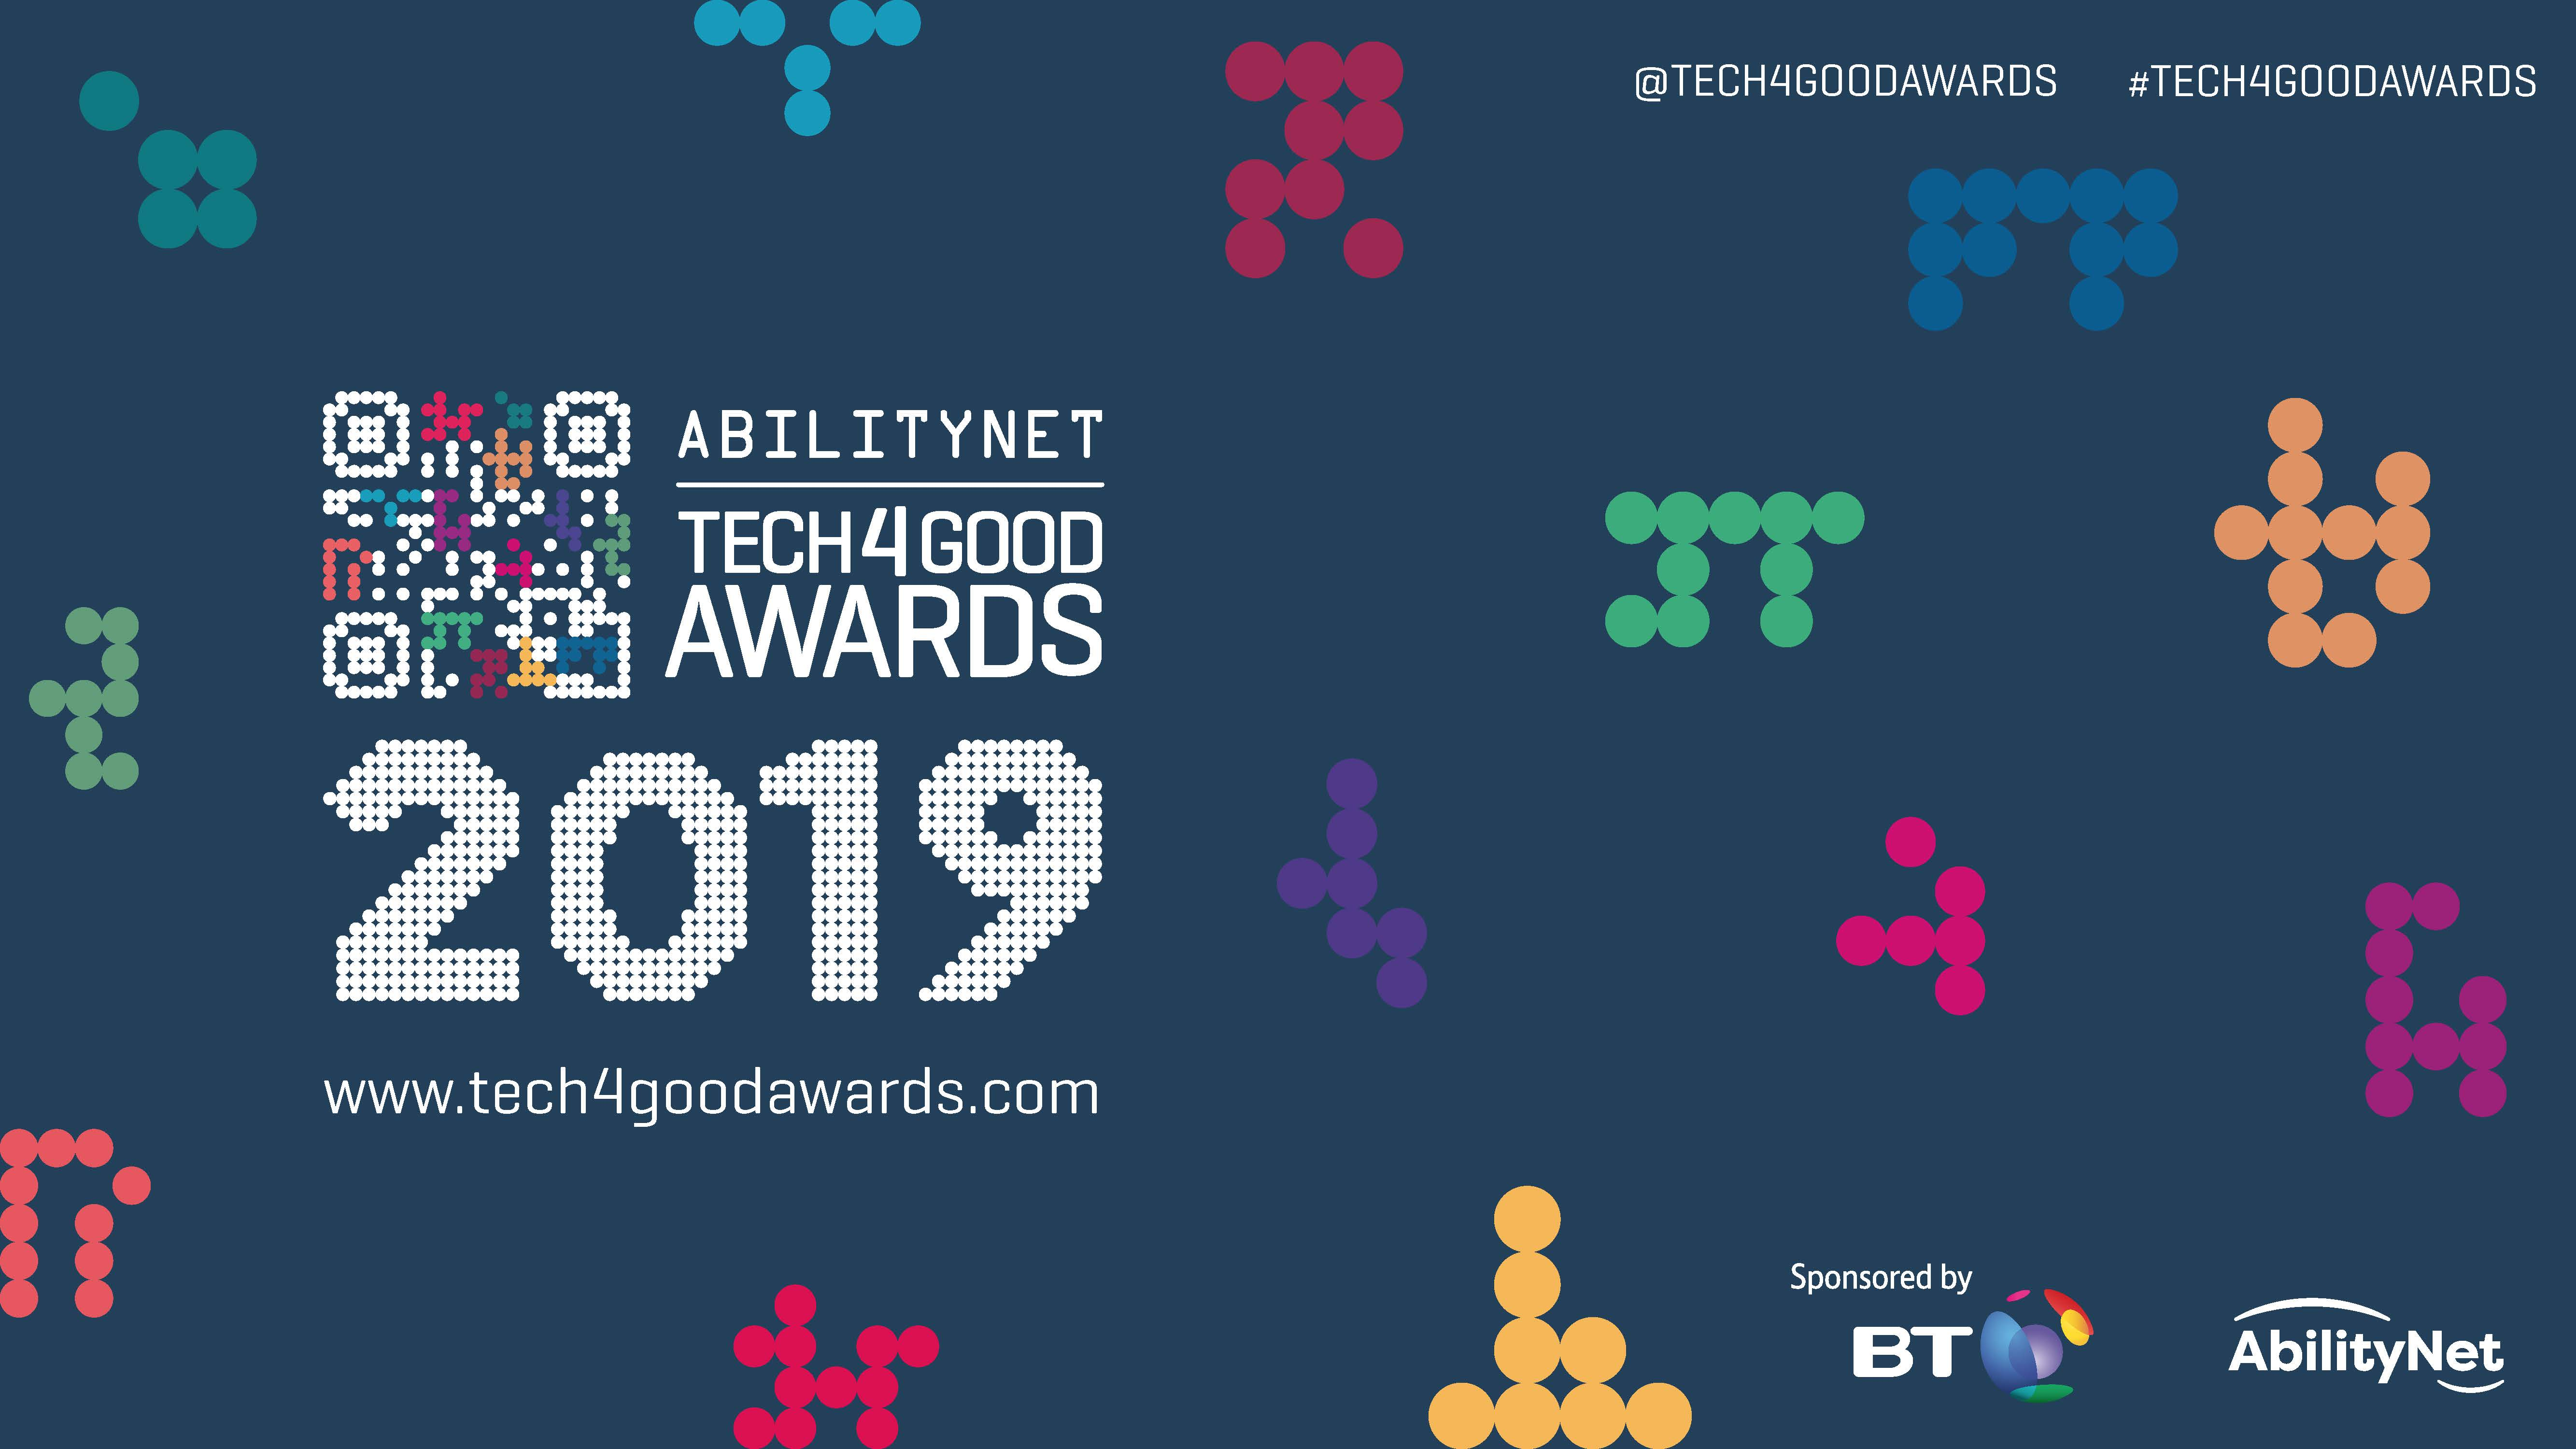 AbilityNet Tech4Good Awards 2019 logo with blue background